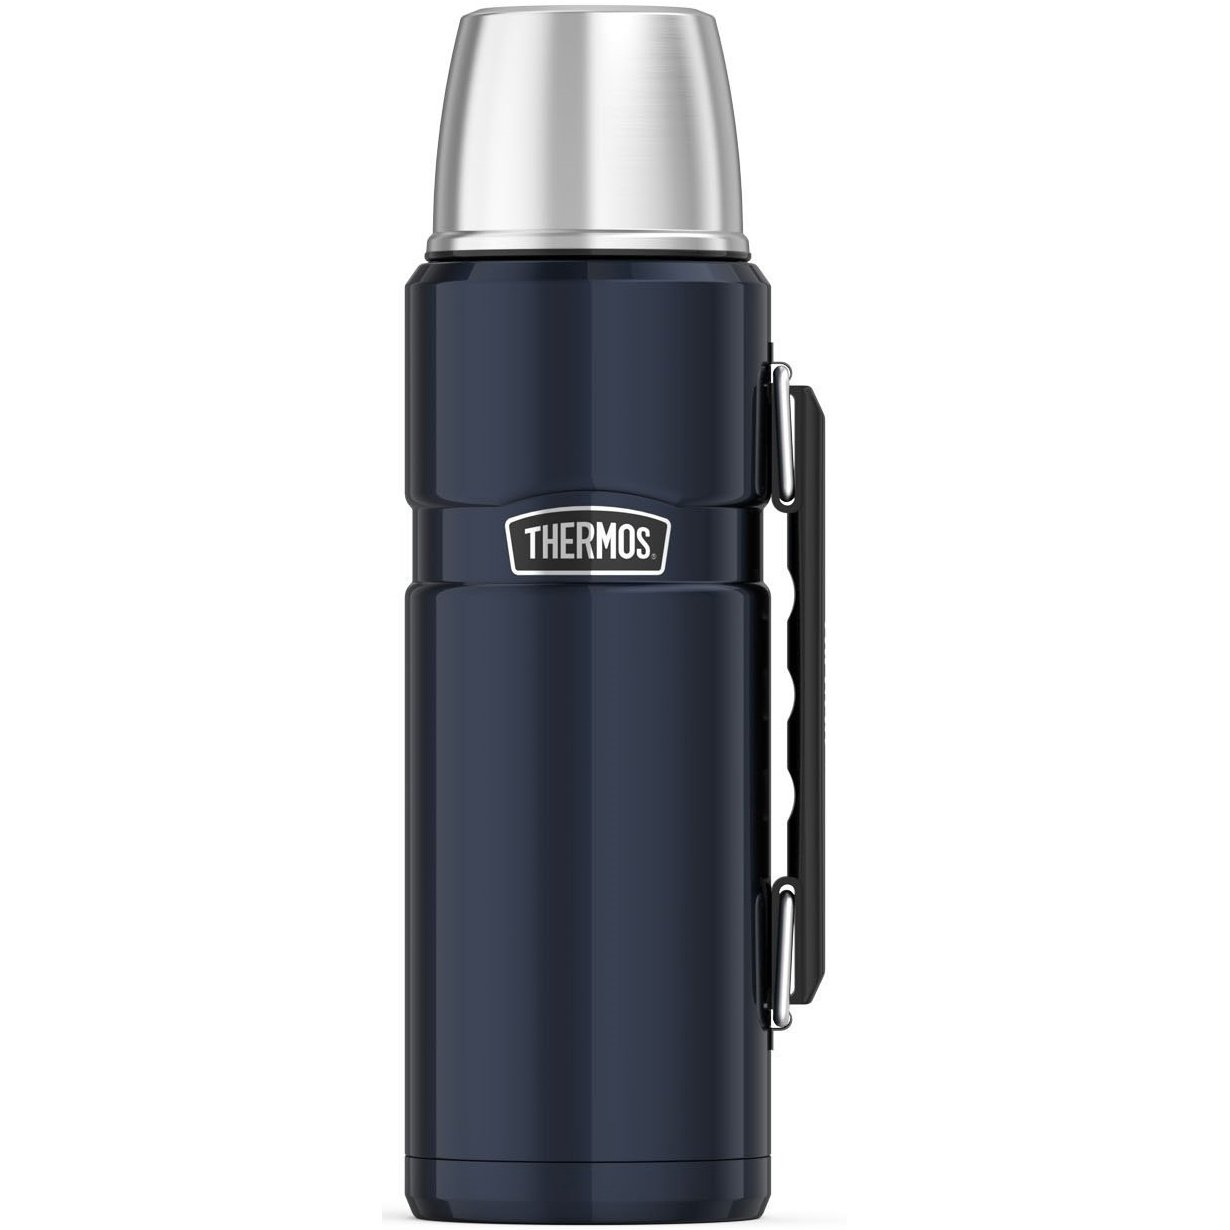 THERMOS STAINLESS KING BEVERAGE BOTTLE 40 OZ